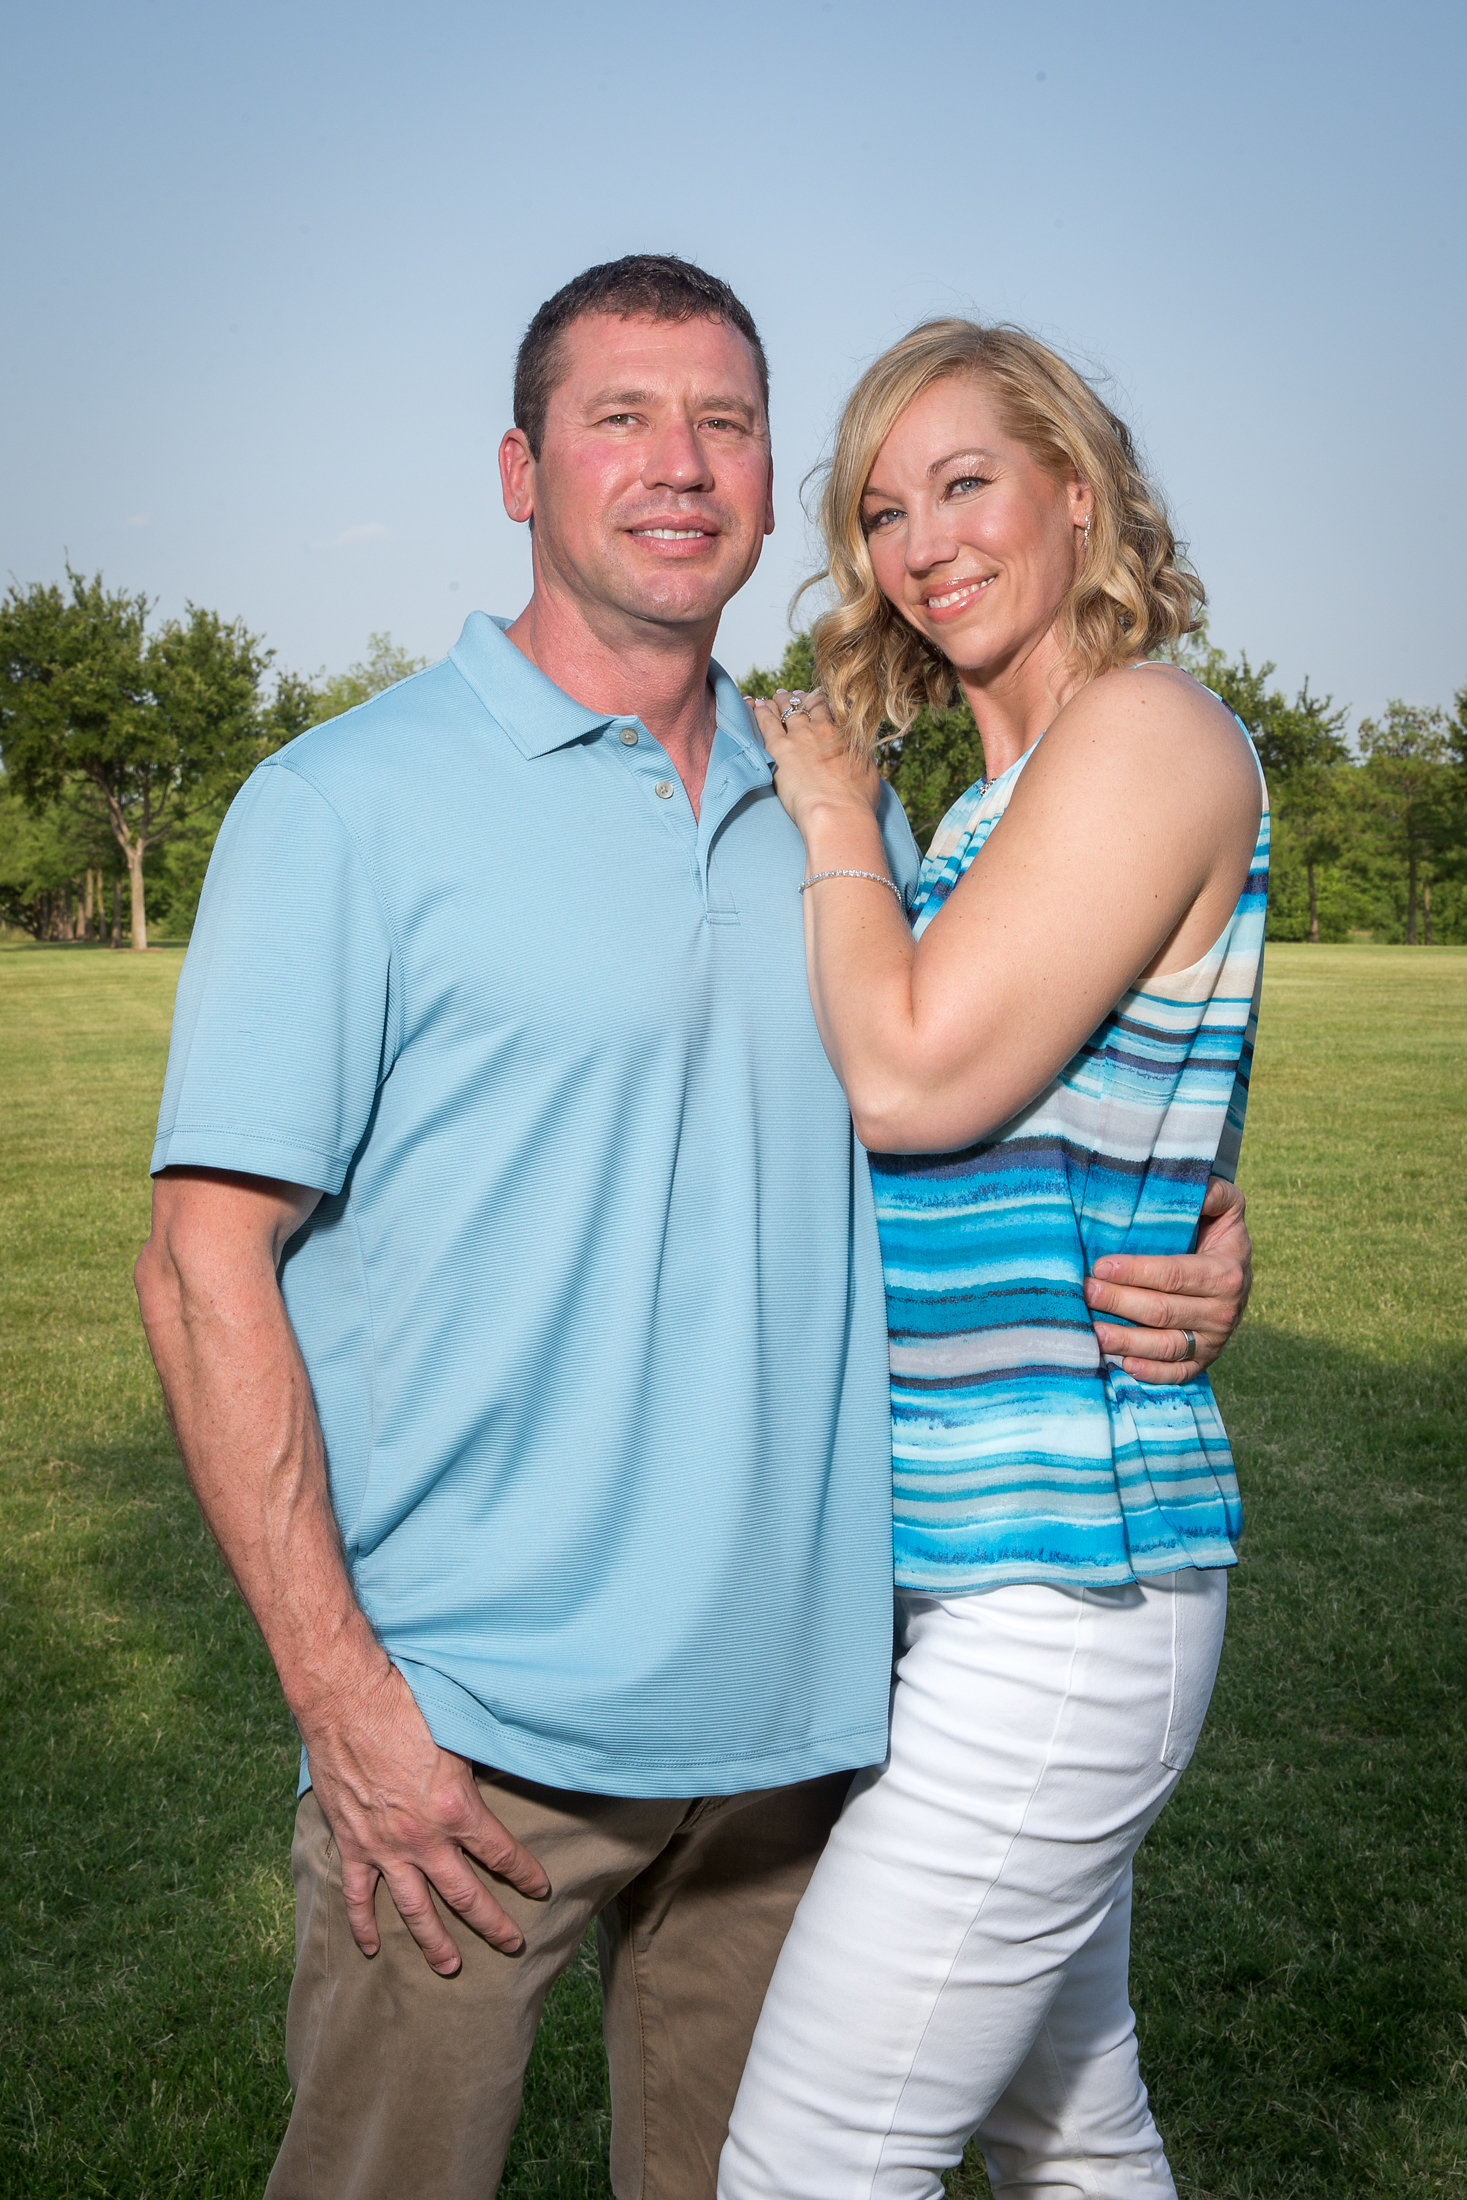 Jeff and Heidi standing together happily at the park